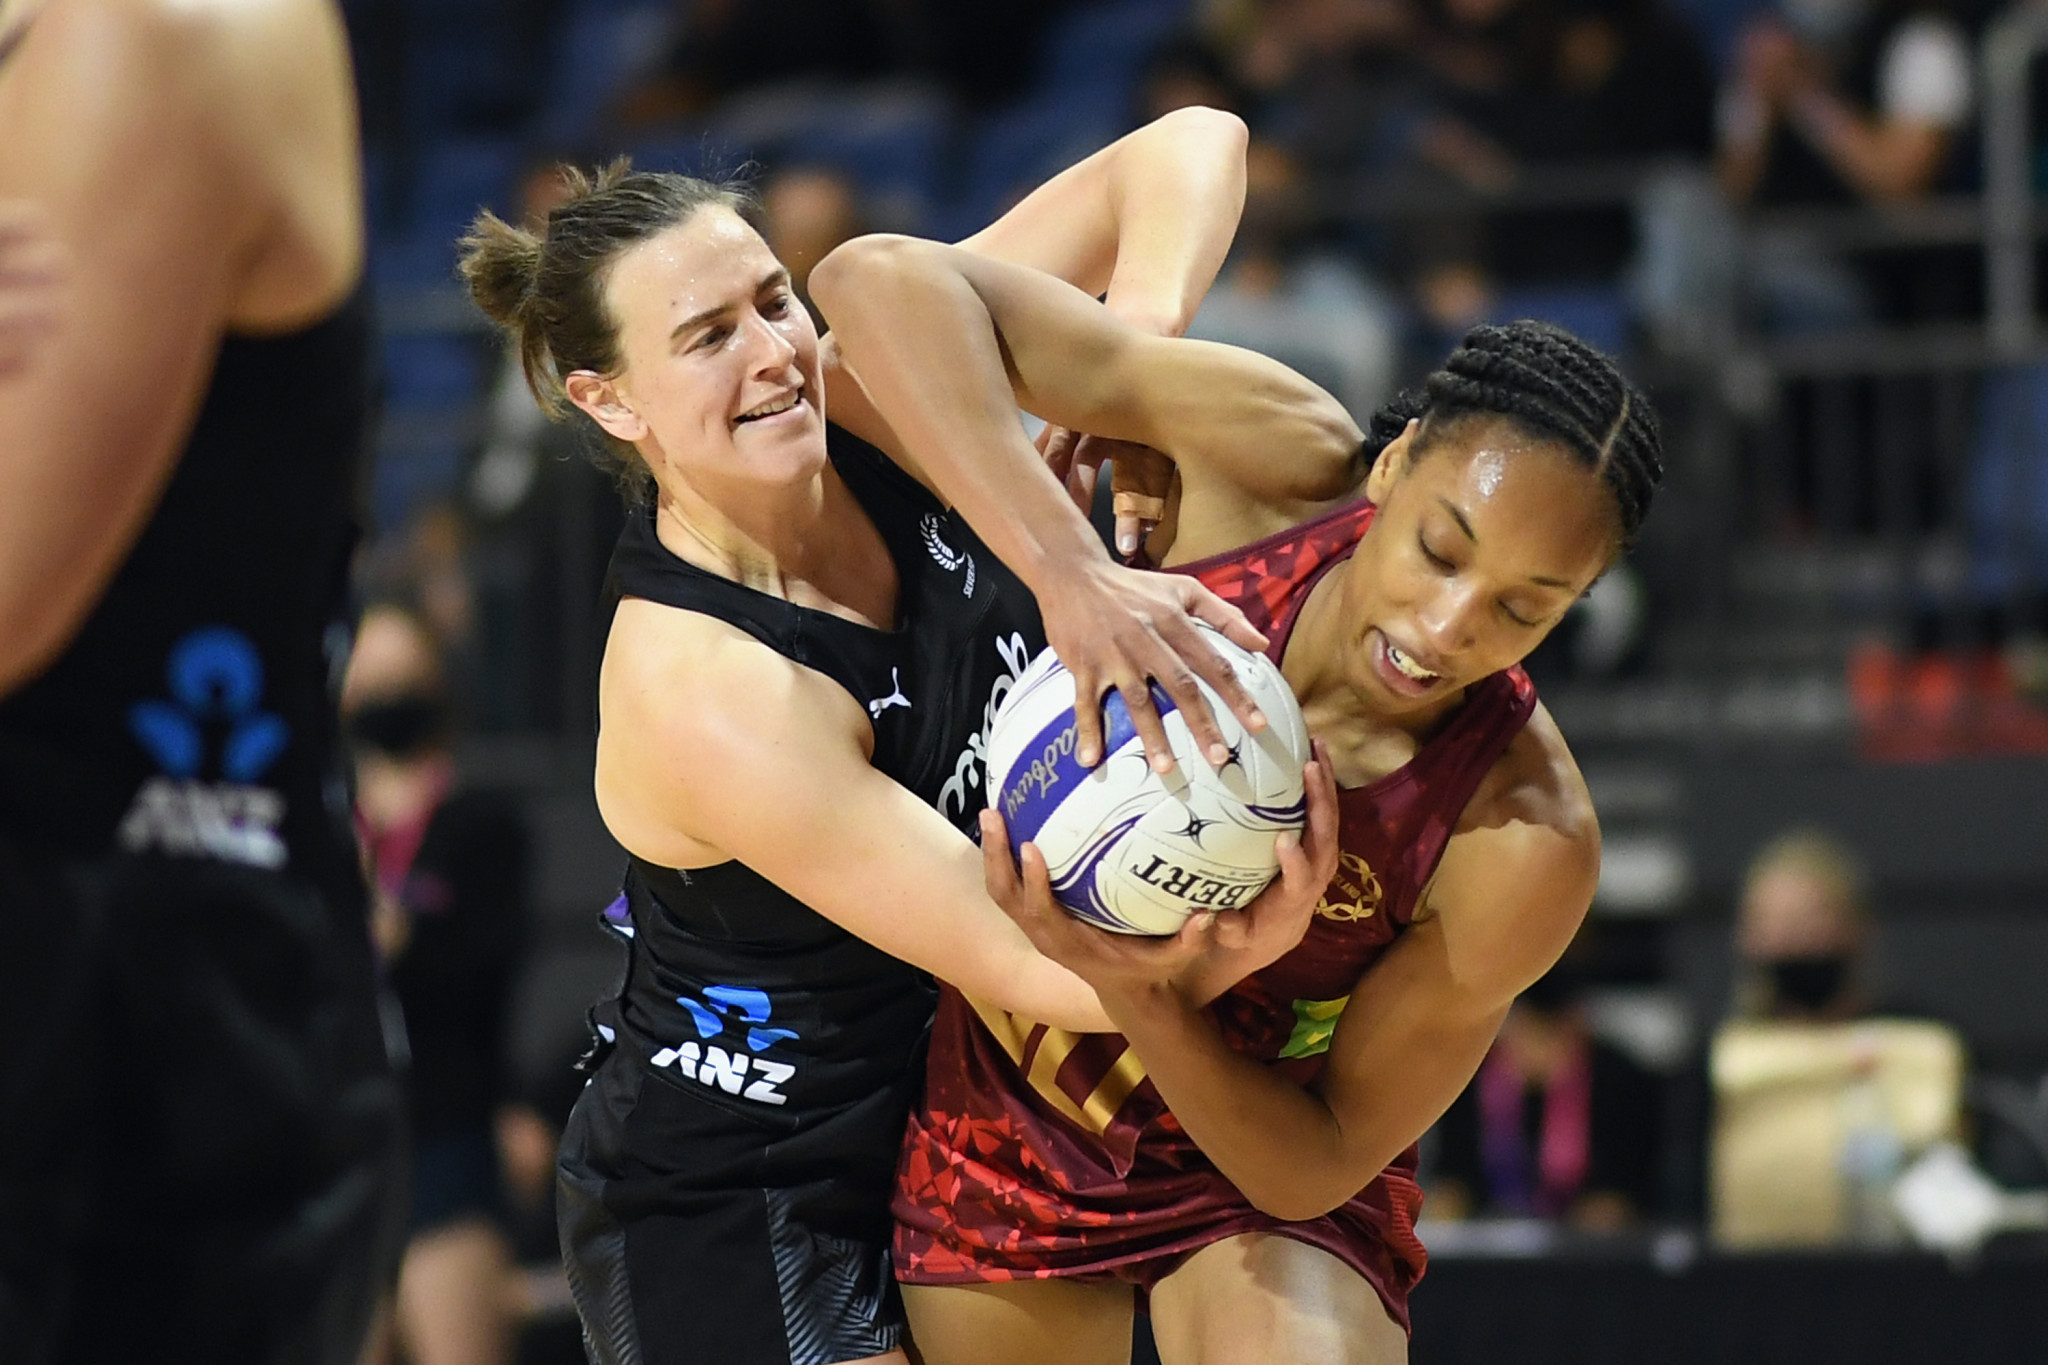 England-Australia netball series cancelled due to COVID-19 travel restrictions